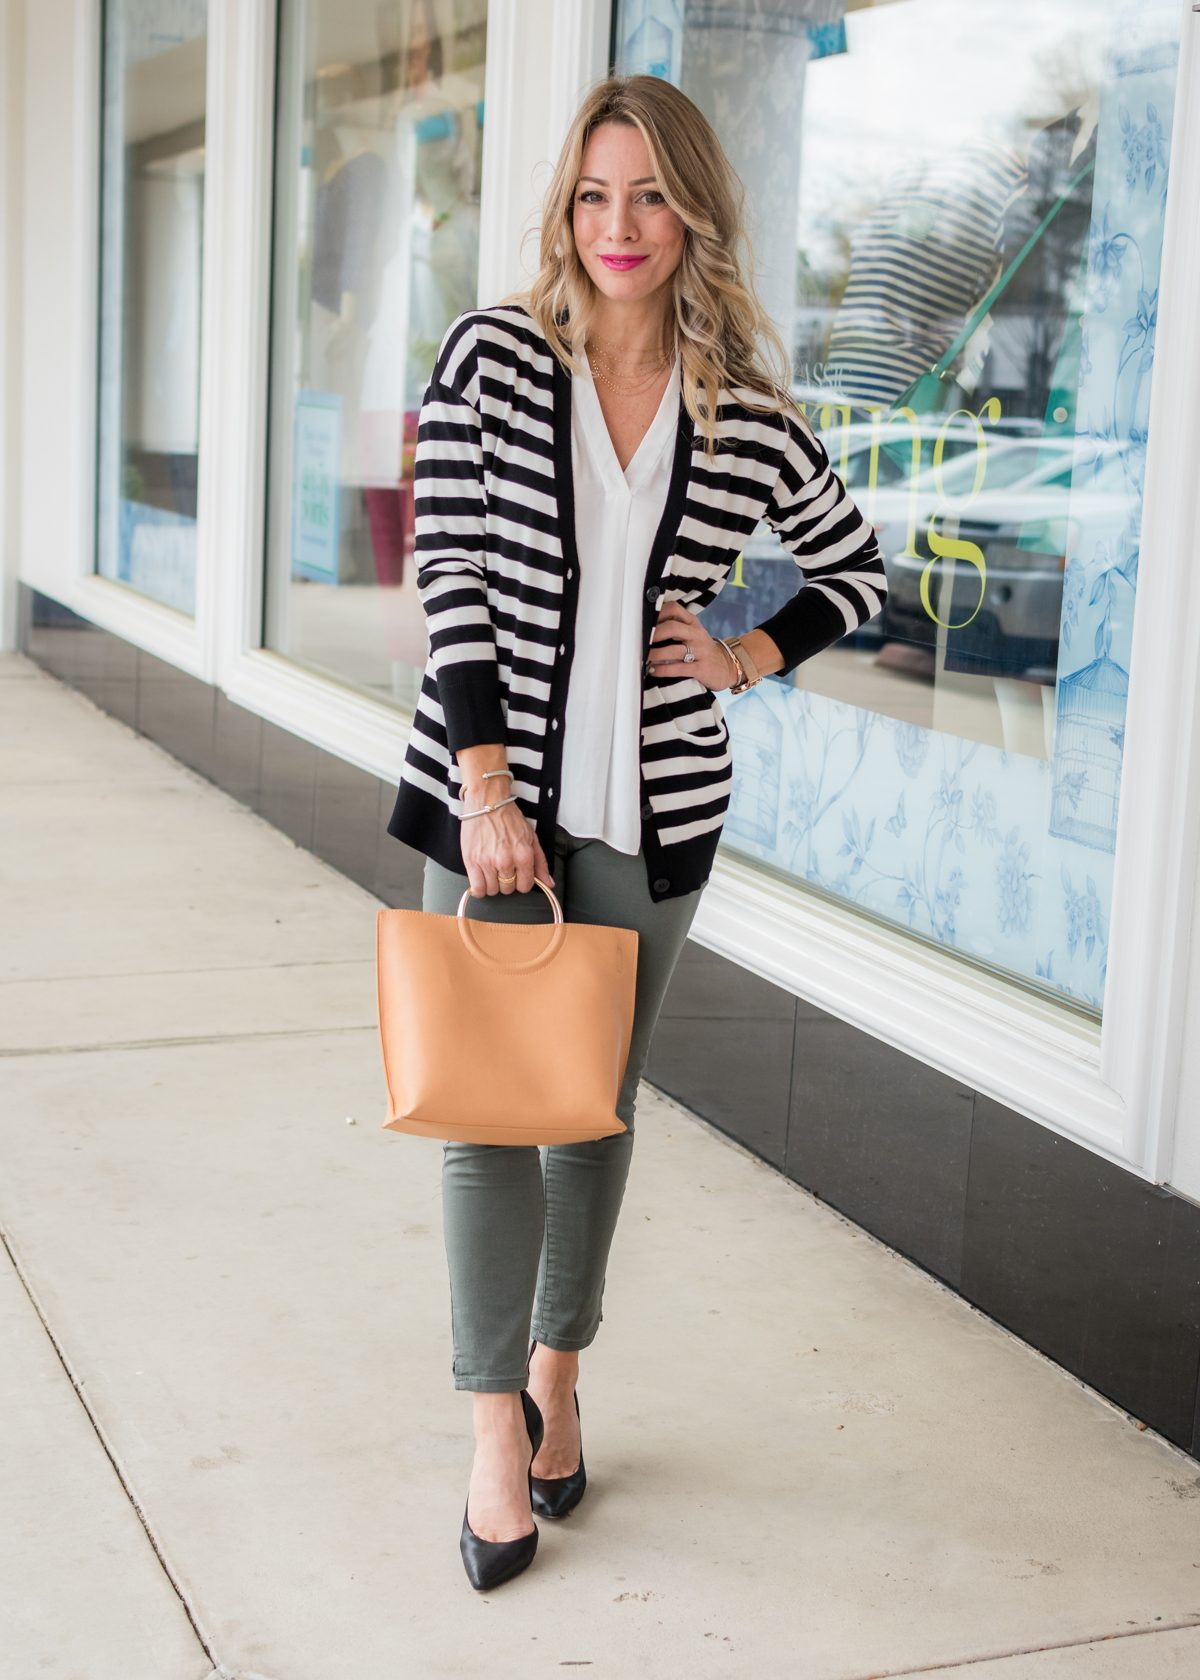 Skimmer Jeans and striped cardigan-1-3Skimmer Jeans and striped cardigan-1-3